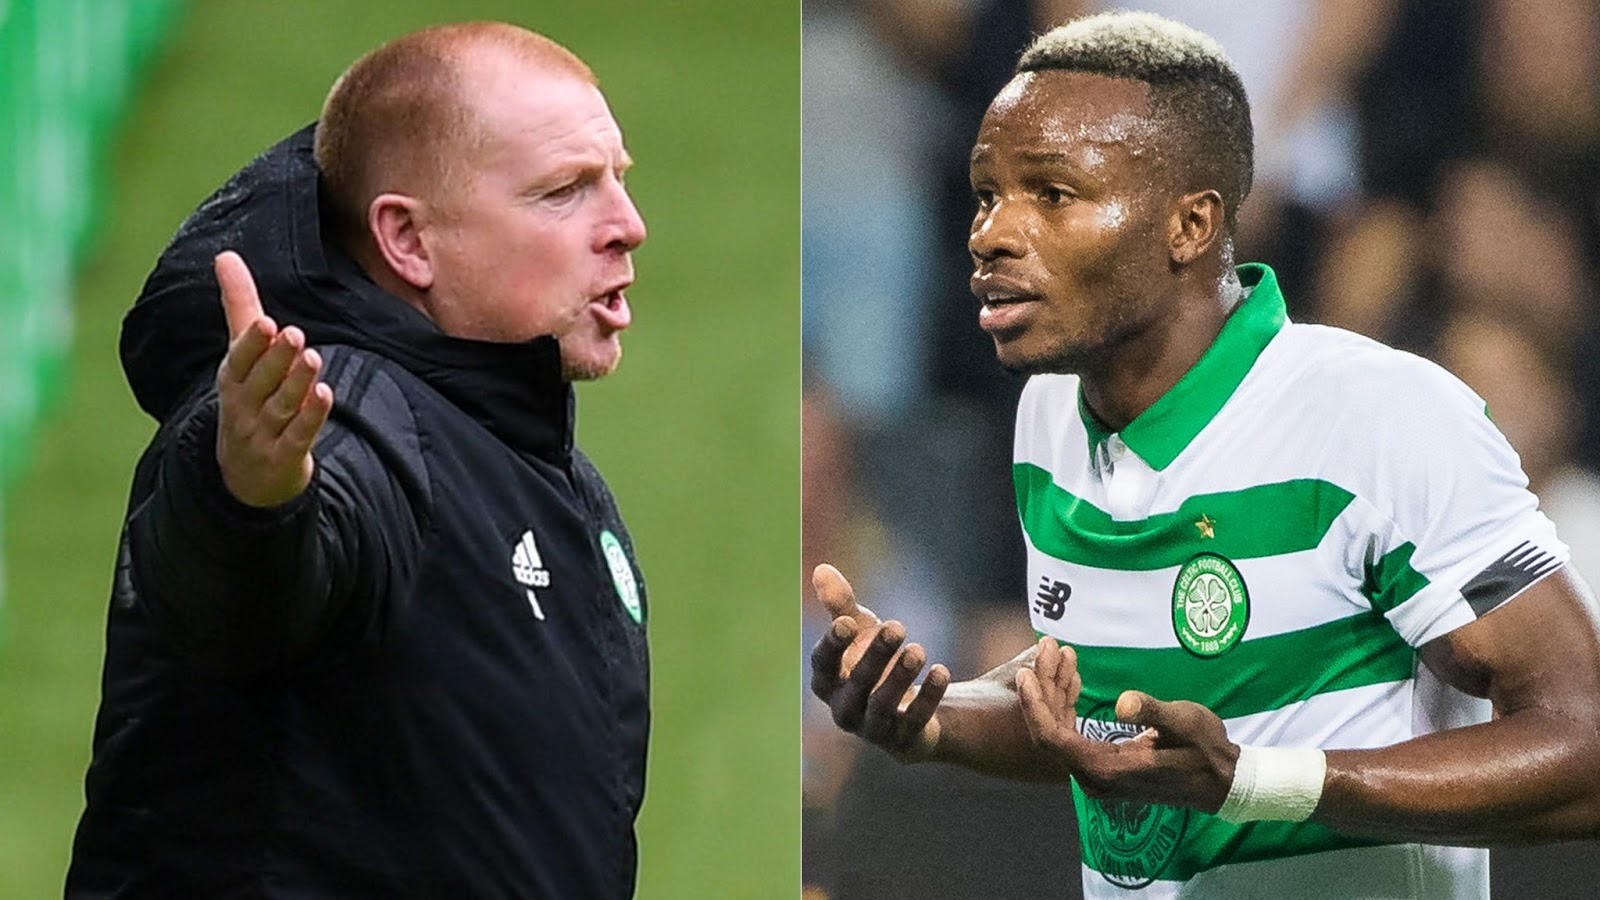 Old Firm shocker emerges following Bolingoli's moment of madness